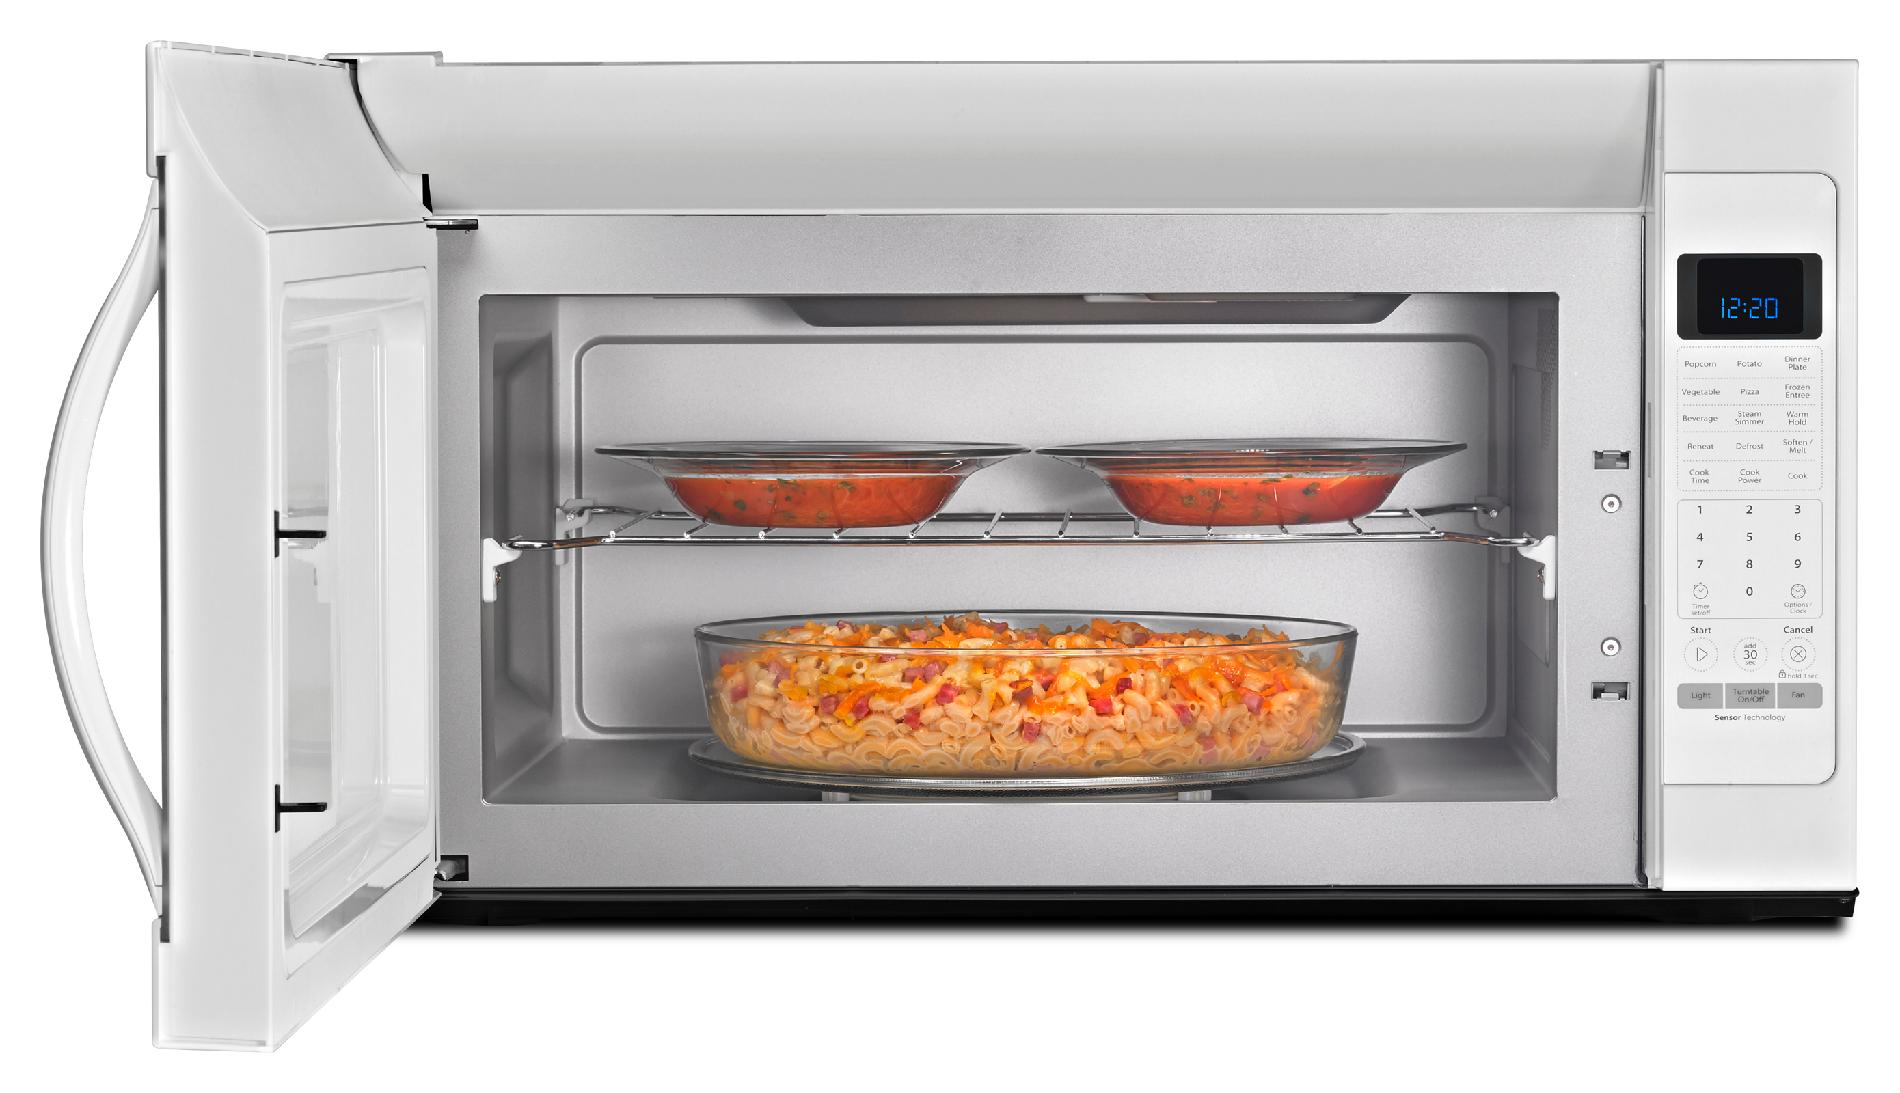 Whirlpool 2.0 cu. ft. Over-the-Range Microwave w/ CleanRelease® Non-Stick Interior - White